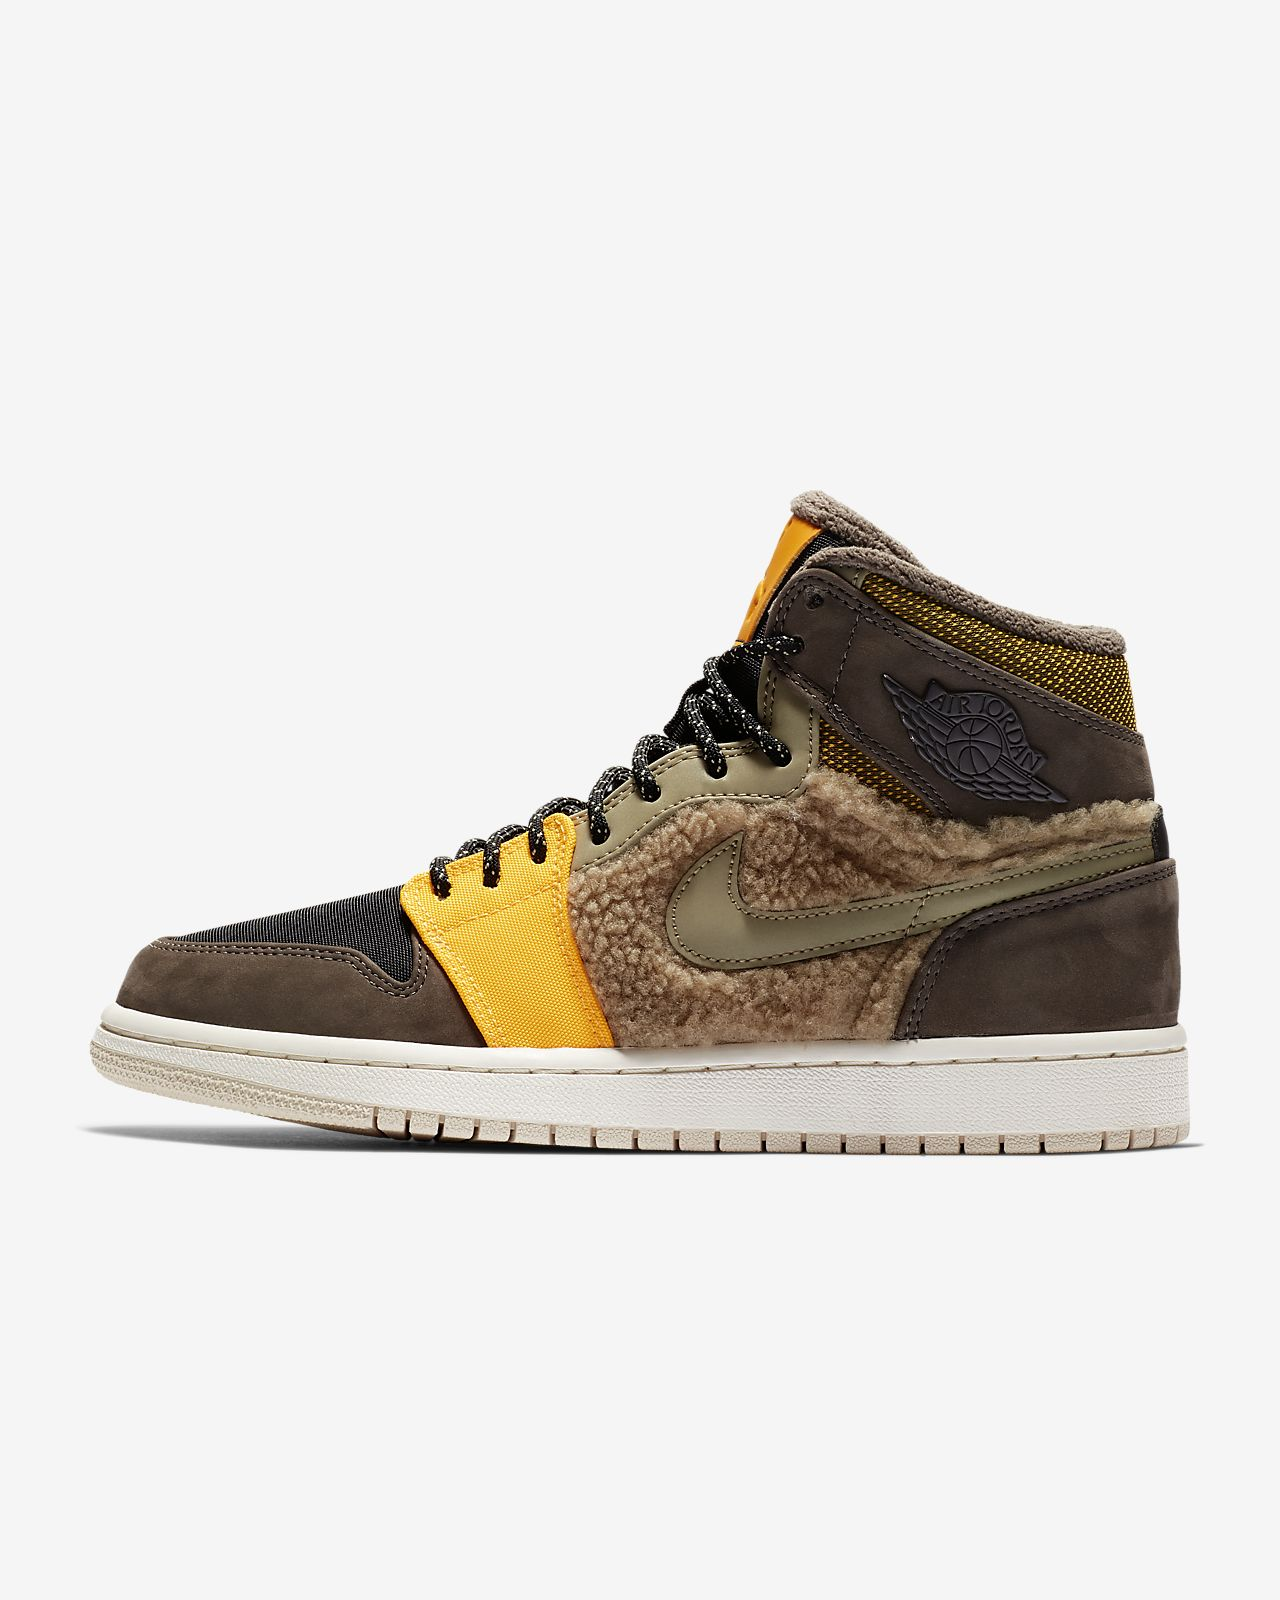 new concept 51c16 3c42d Air Jordan 1 Retro High Premium Utility